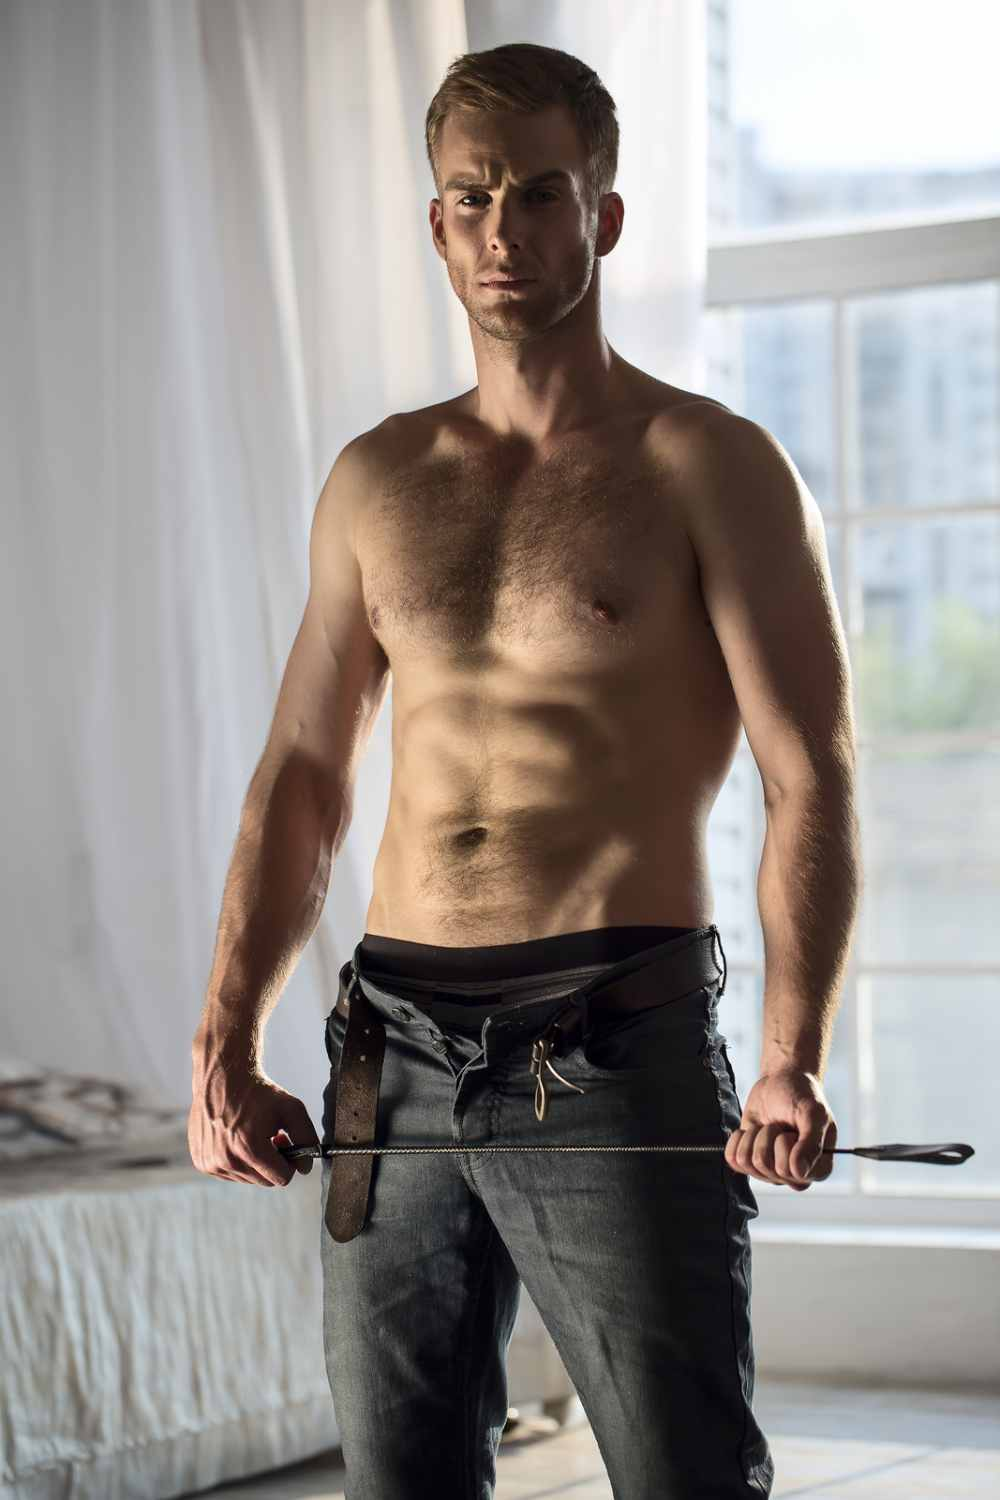 bigstock-Handsome-guy-topless-with-whip-97971305.jpeg